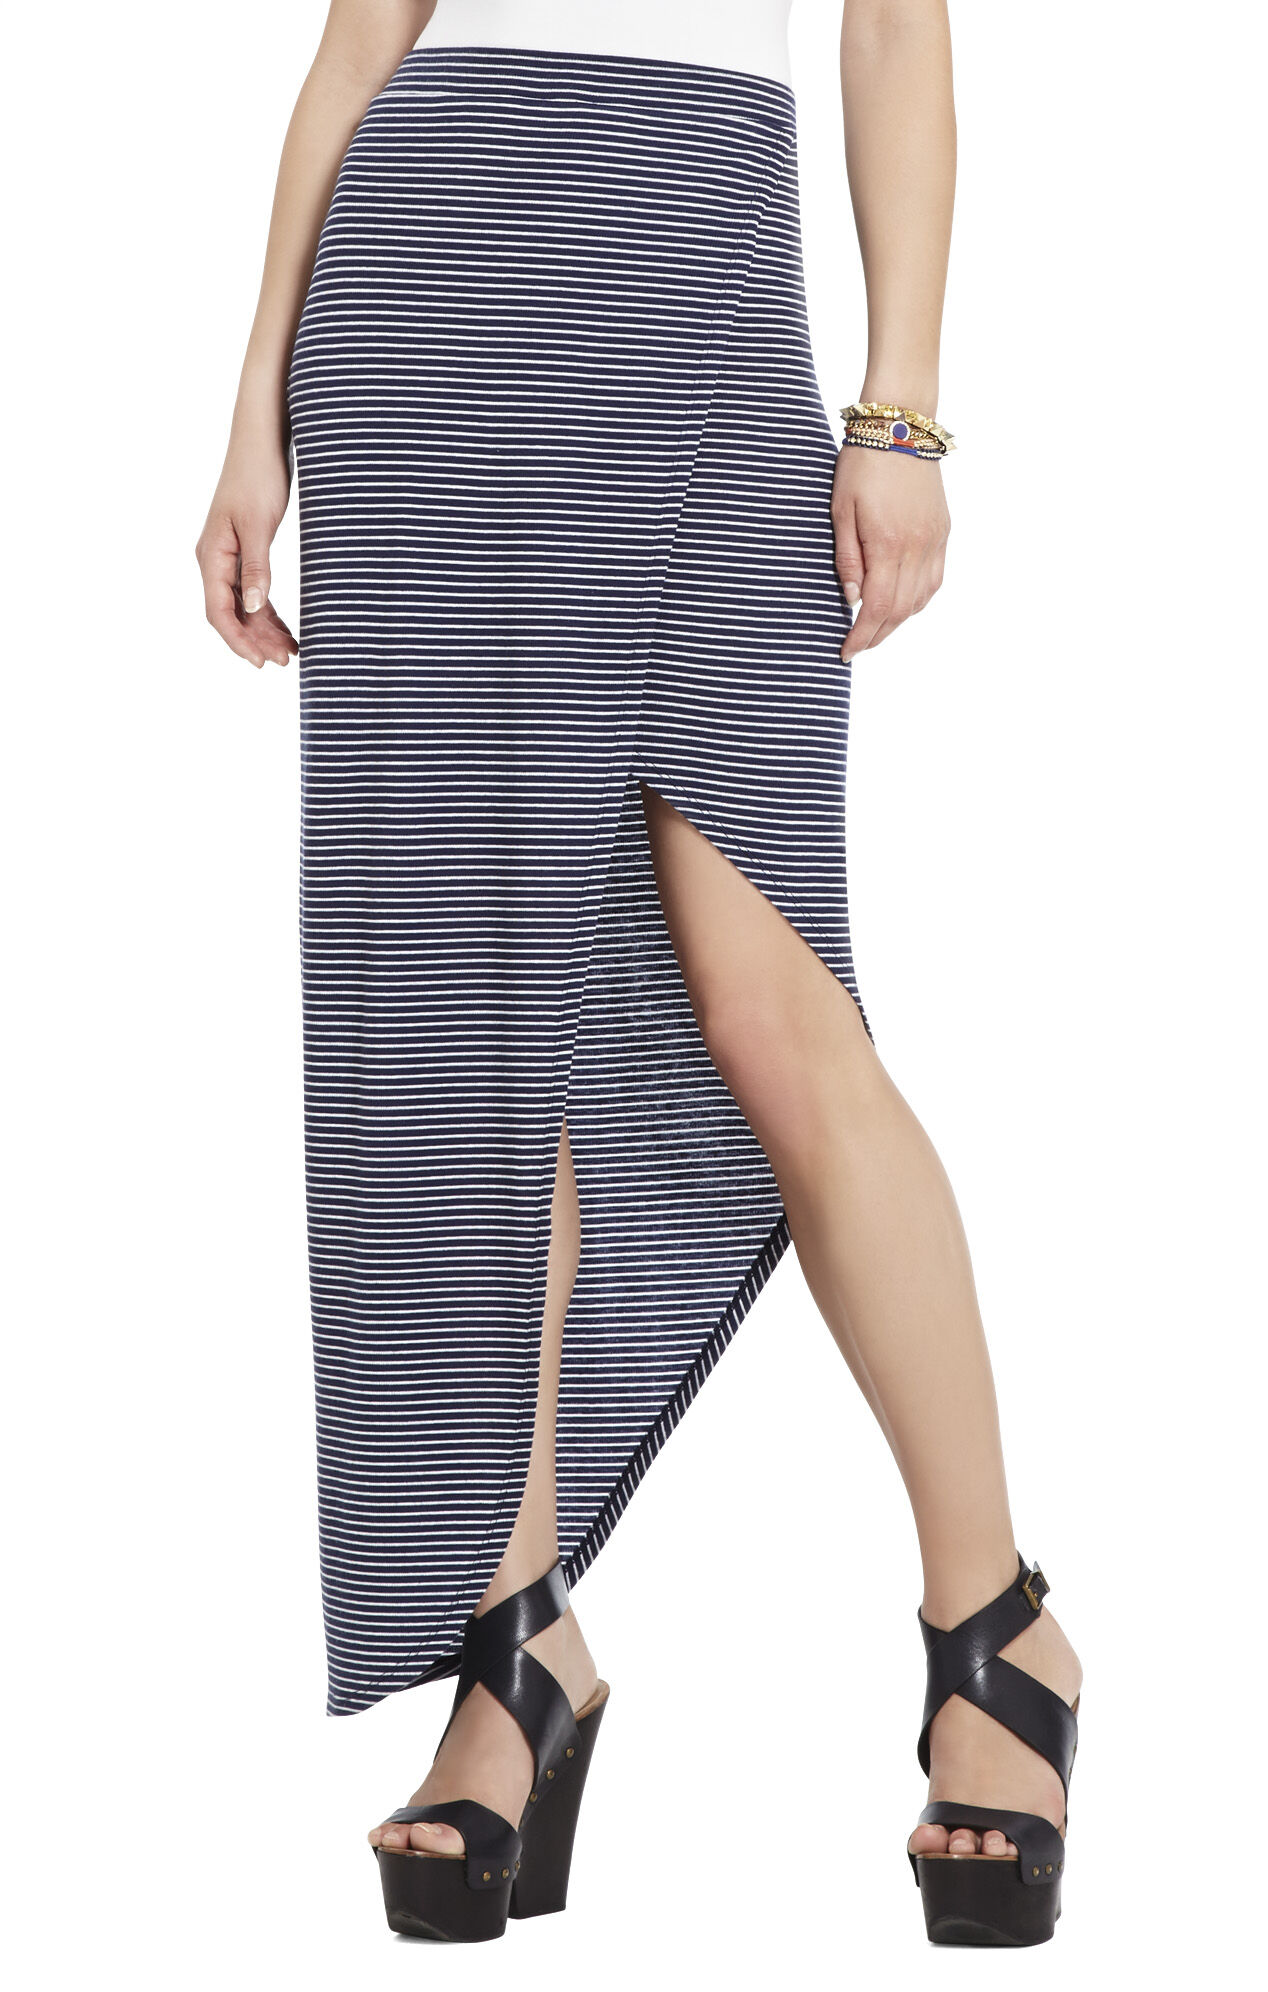 Mercer Ribbed Wraparound Skirt